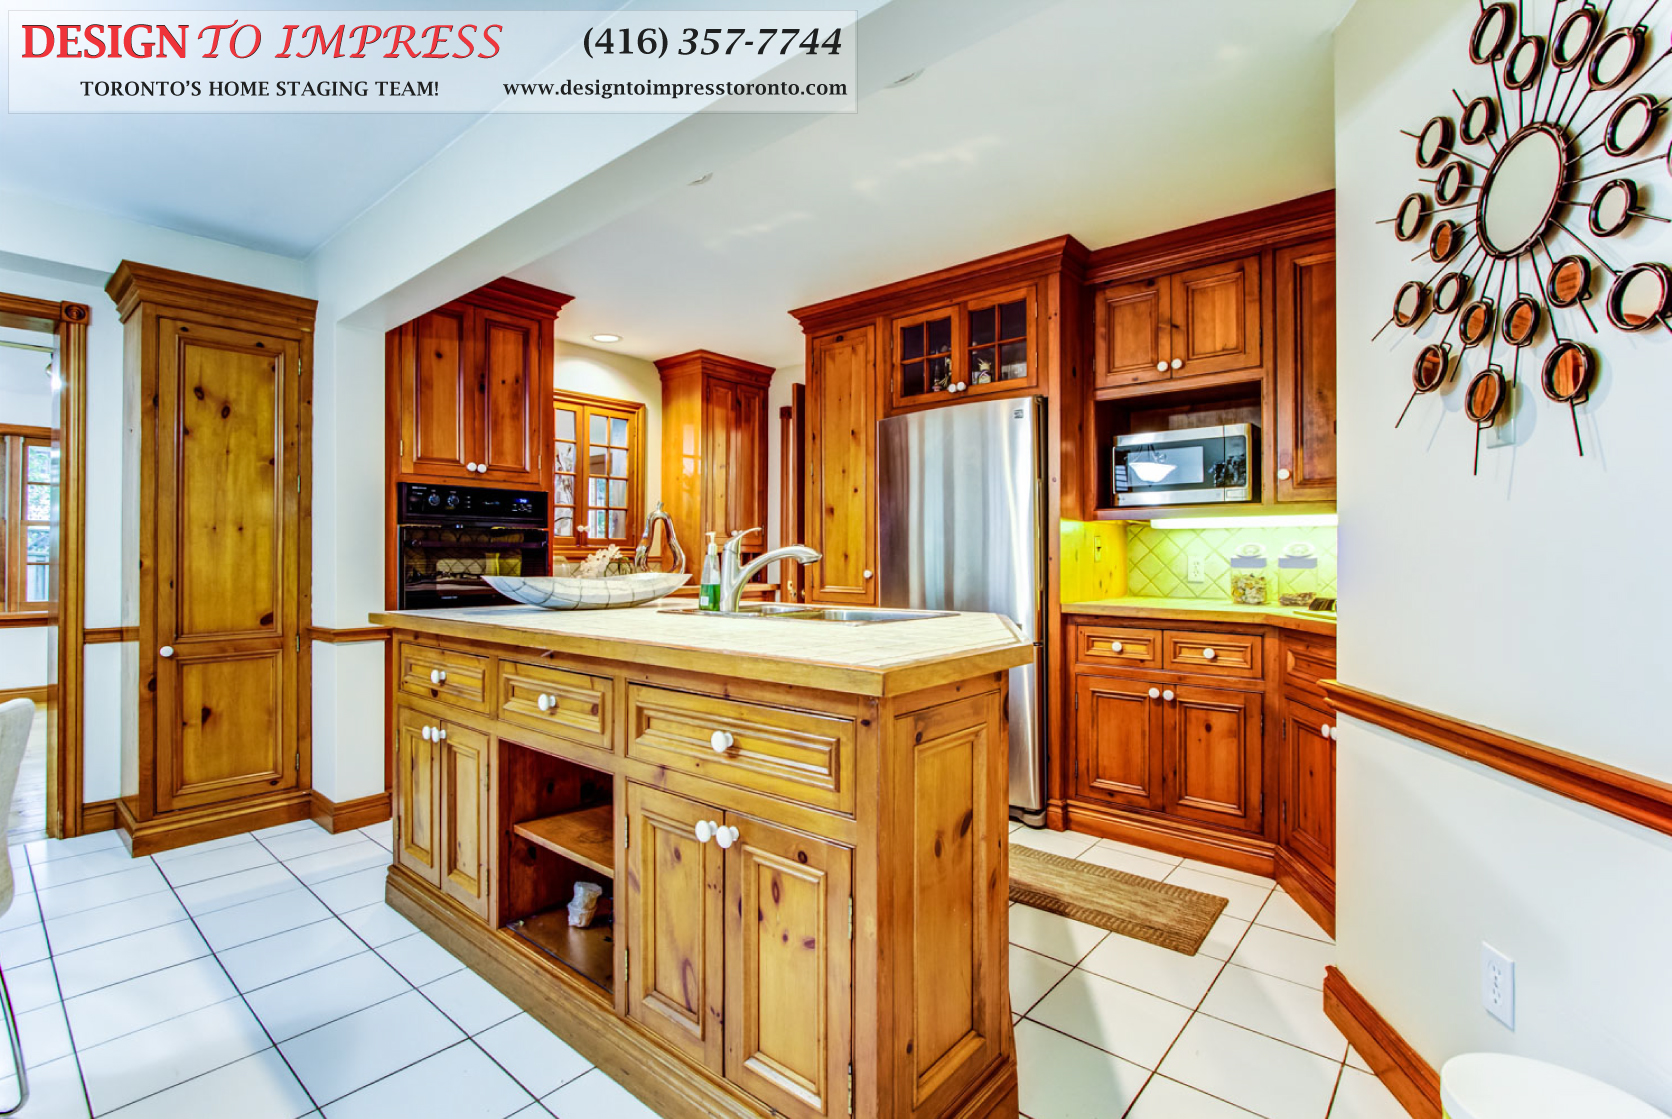 Kitchen Cabinets, 133 Huntington Park, Thornhill Home Staging